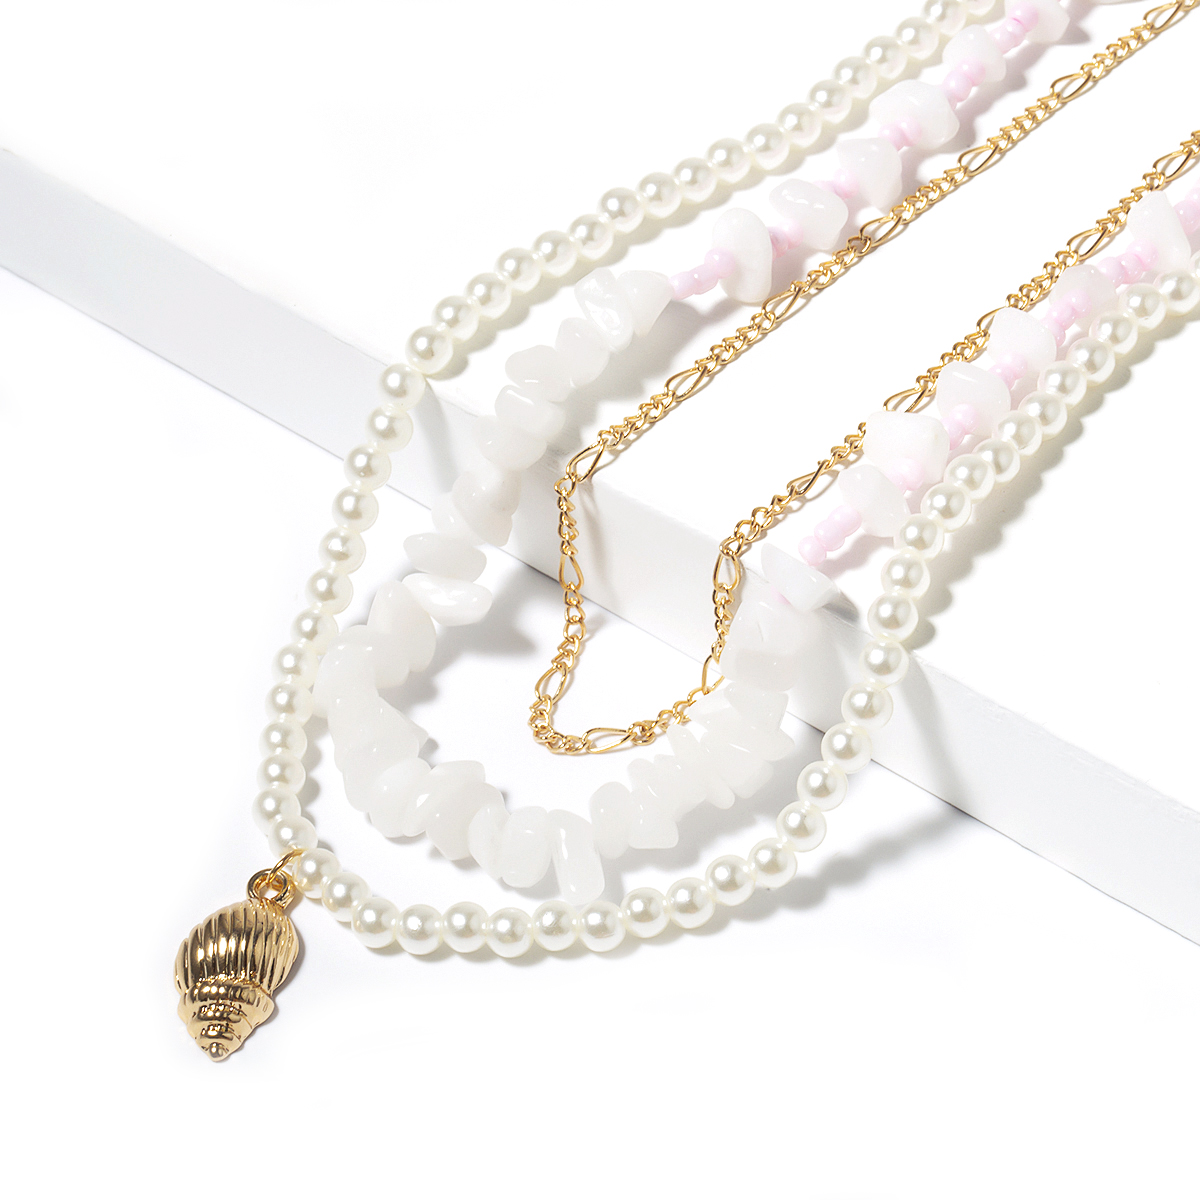 Lacteo Bohemian Multi Layer Golden Conch Shell Pendant Necklaces Women Fashion Pearl Collar Chain Choker Necklace Female Jewelry in Pendant Necklaces from Jewelry Accessories